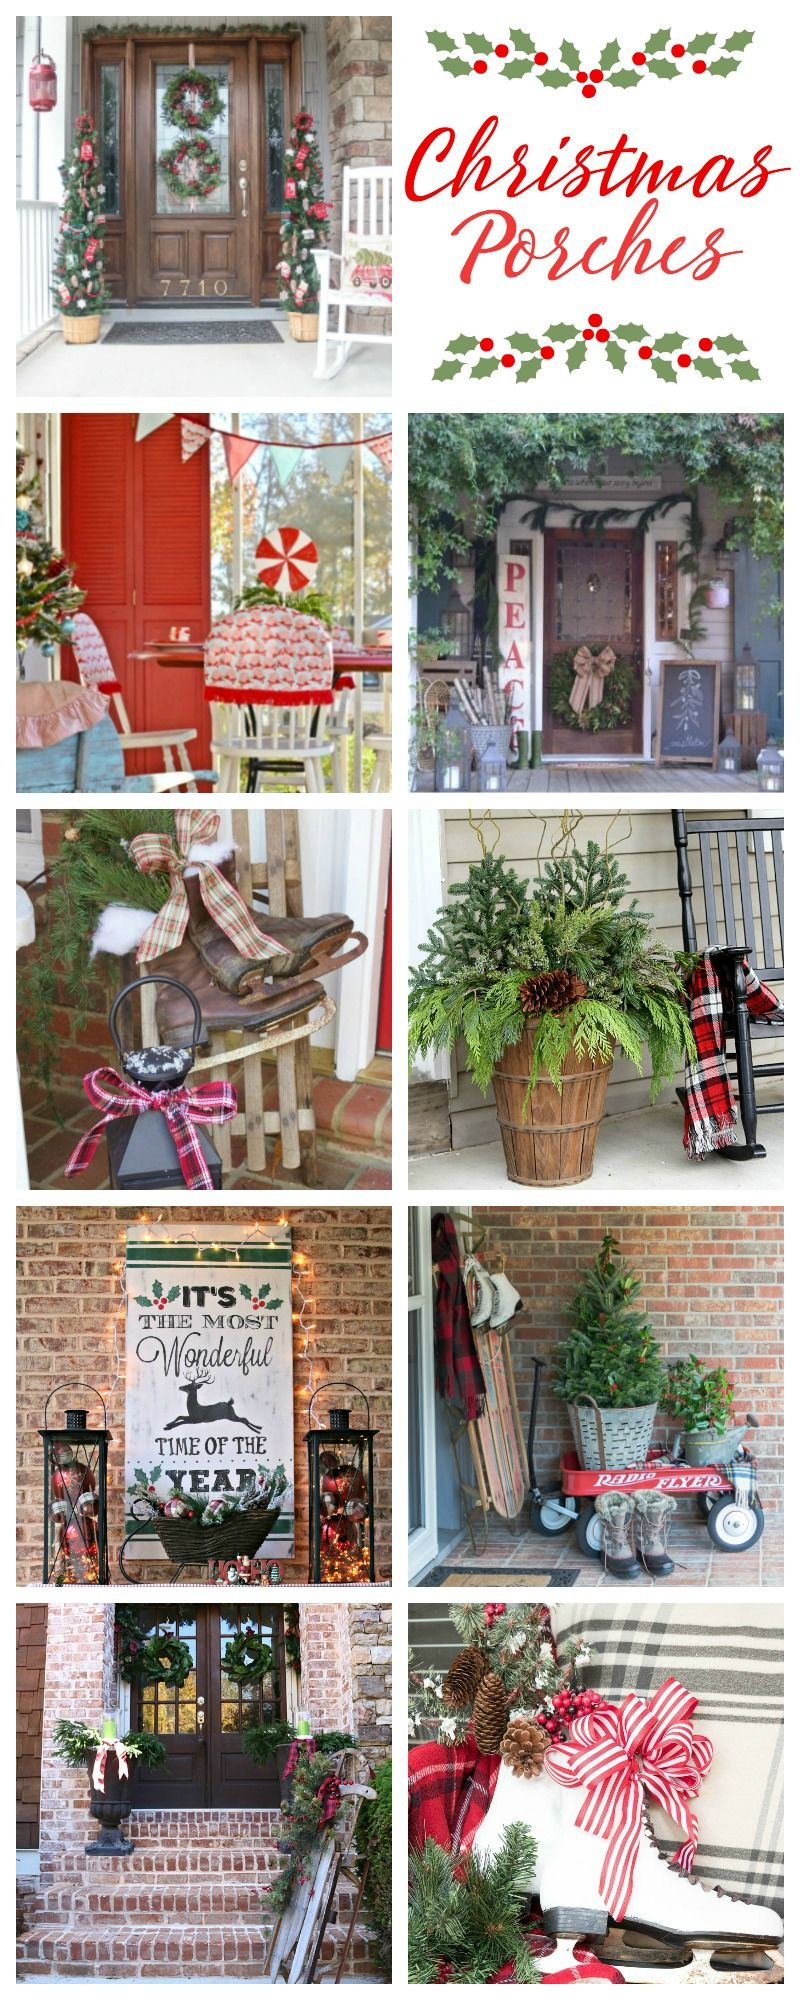 bloggers as we showcase our Christmas